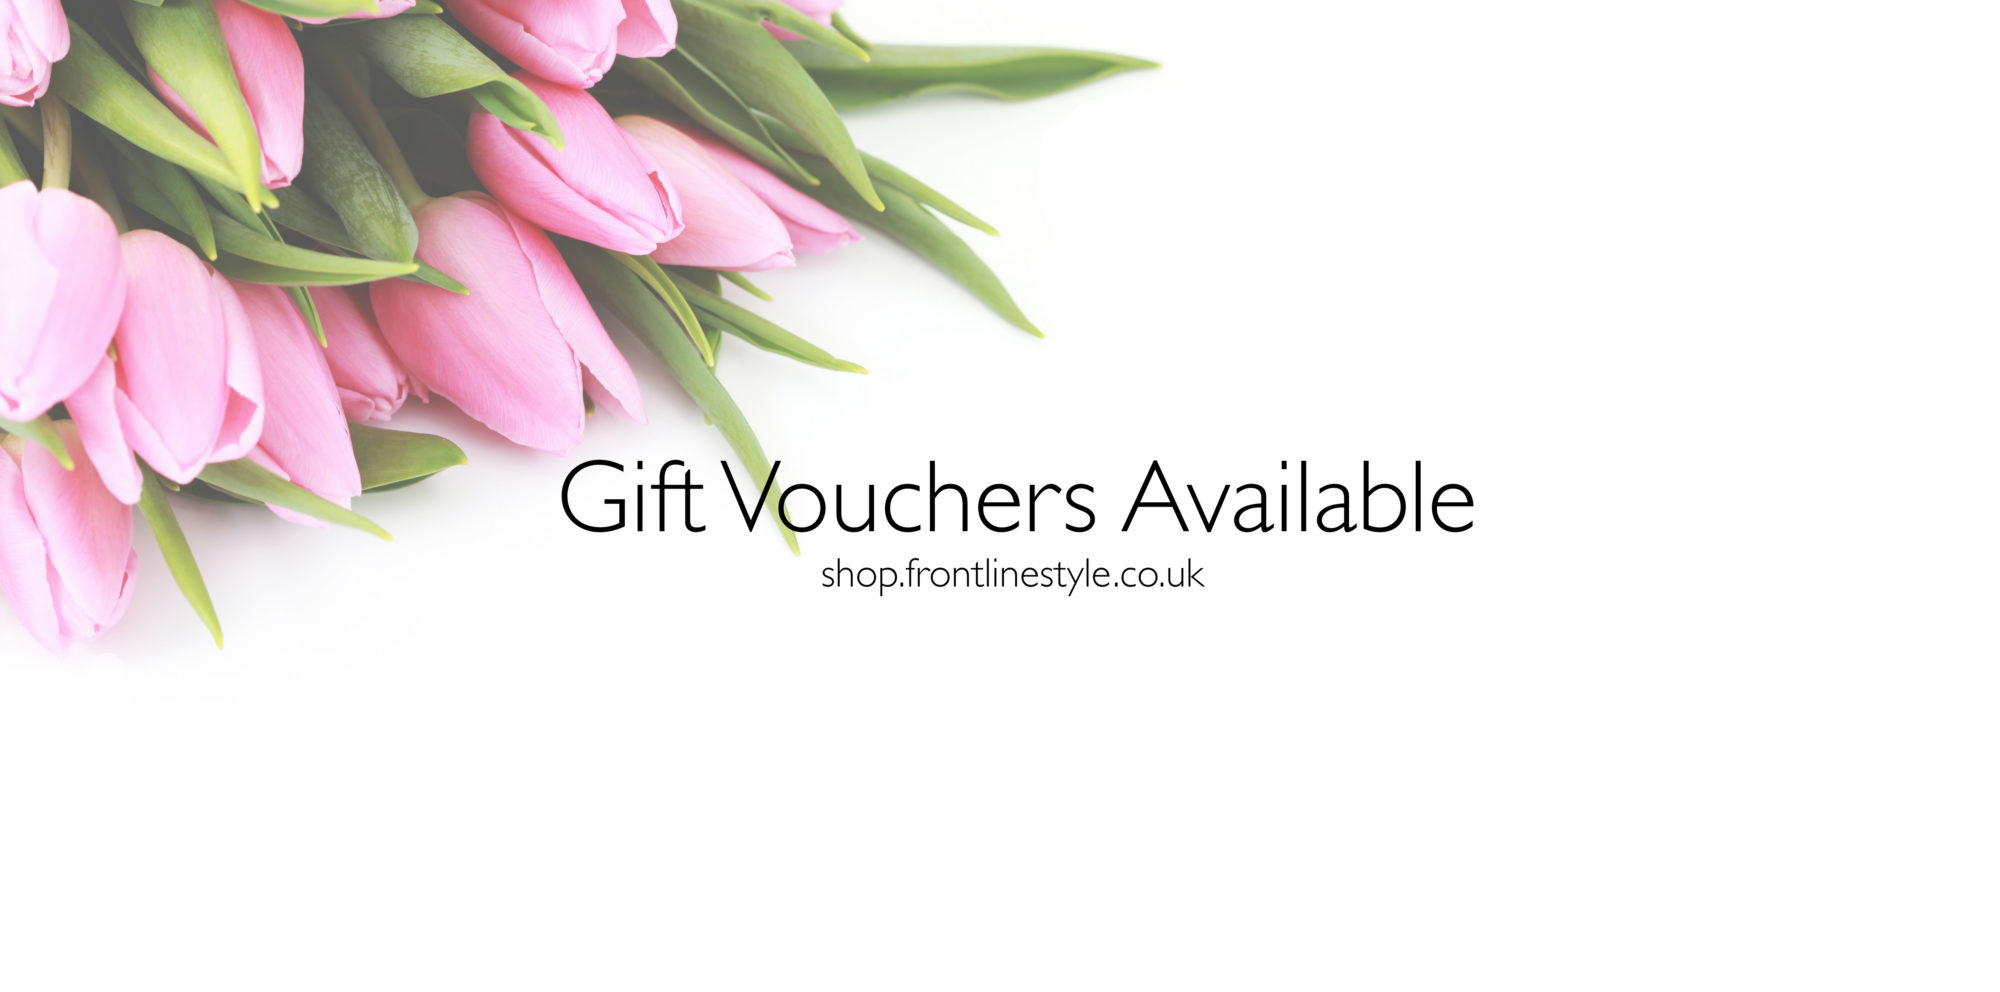 Gift Voucher Available at Frontlinestyle